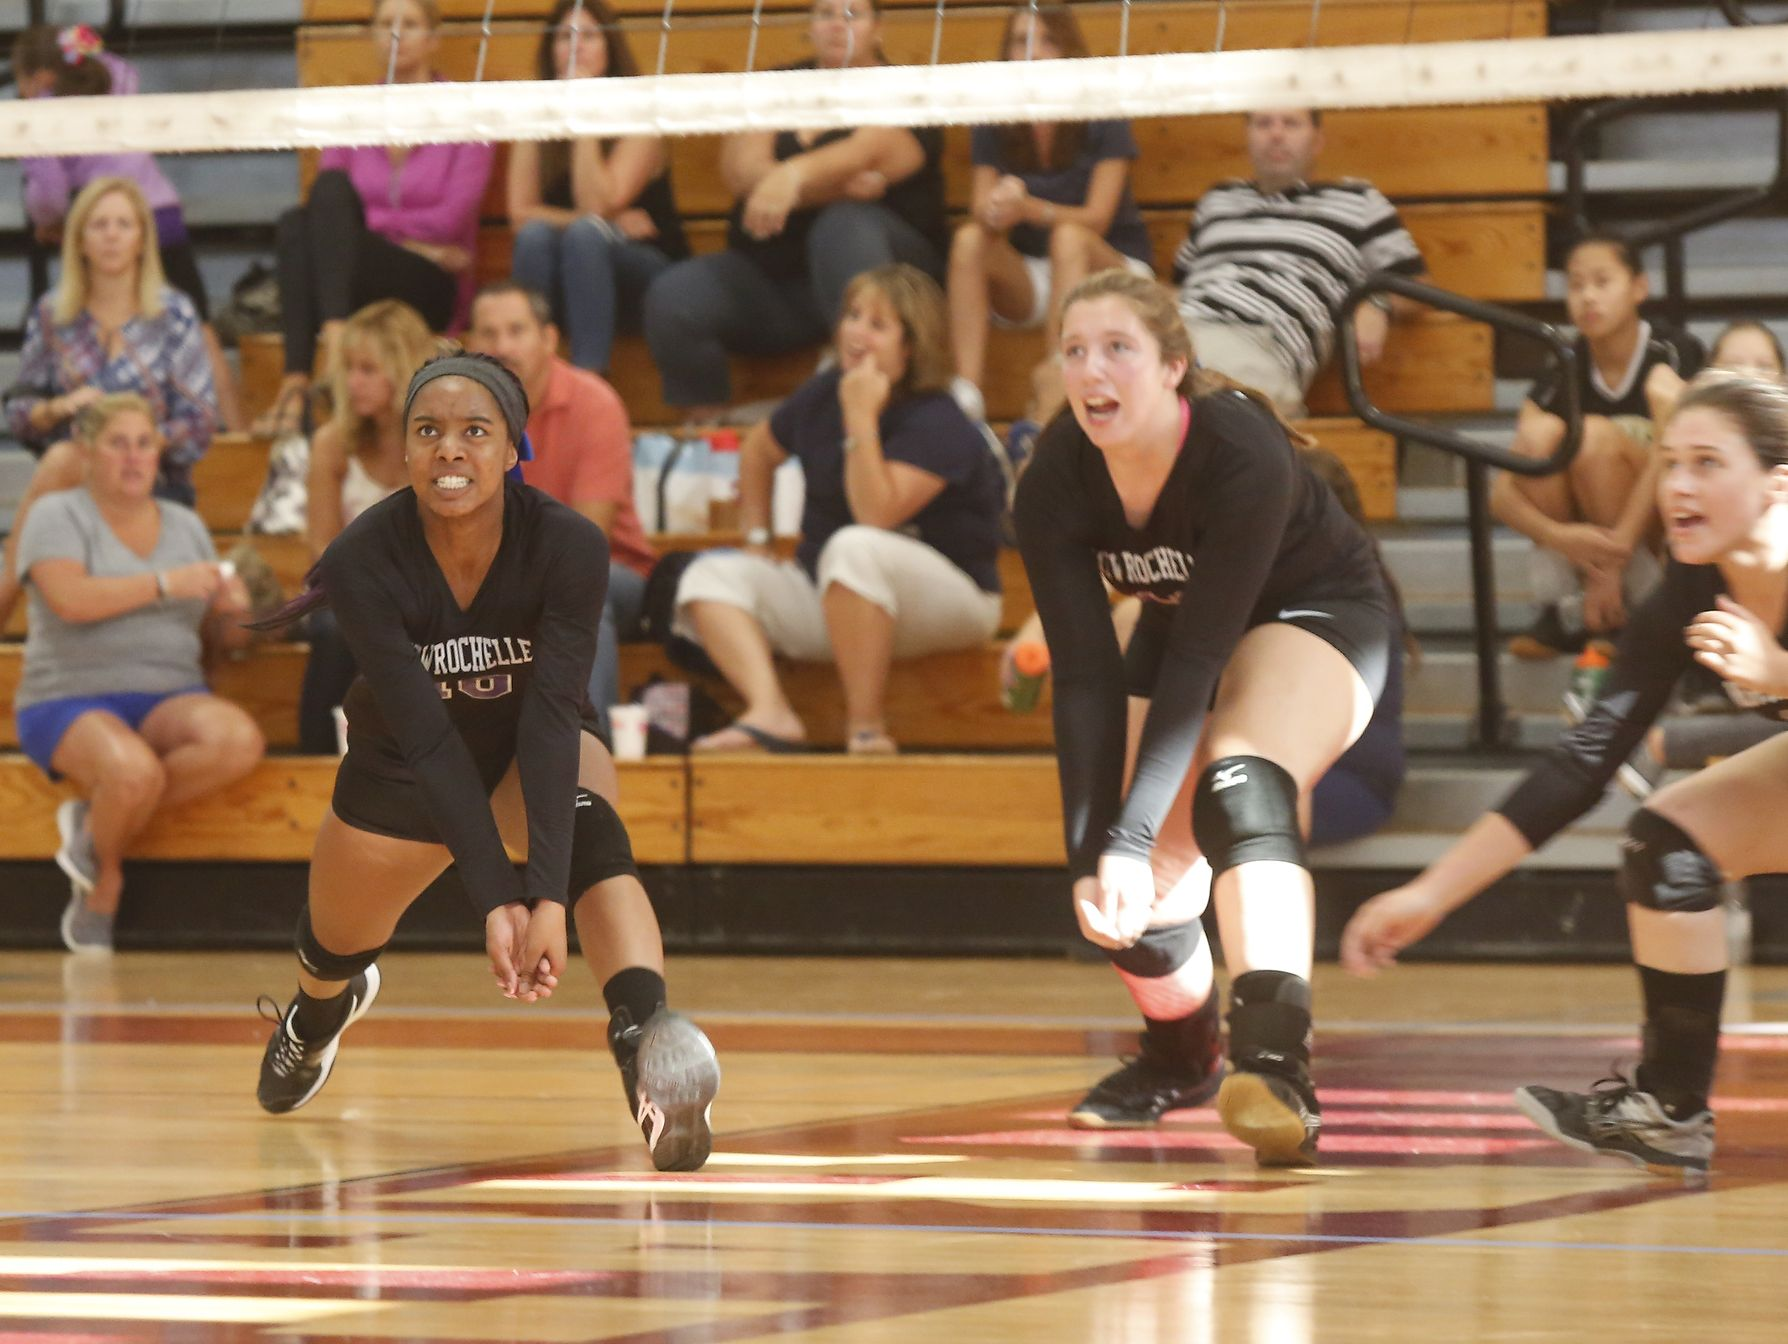 New Rochelle takes on Eastchester during the Scarsdale volleyball tournament at Scarsdale High School on Saturday, September 17, 2016.